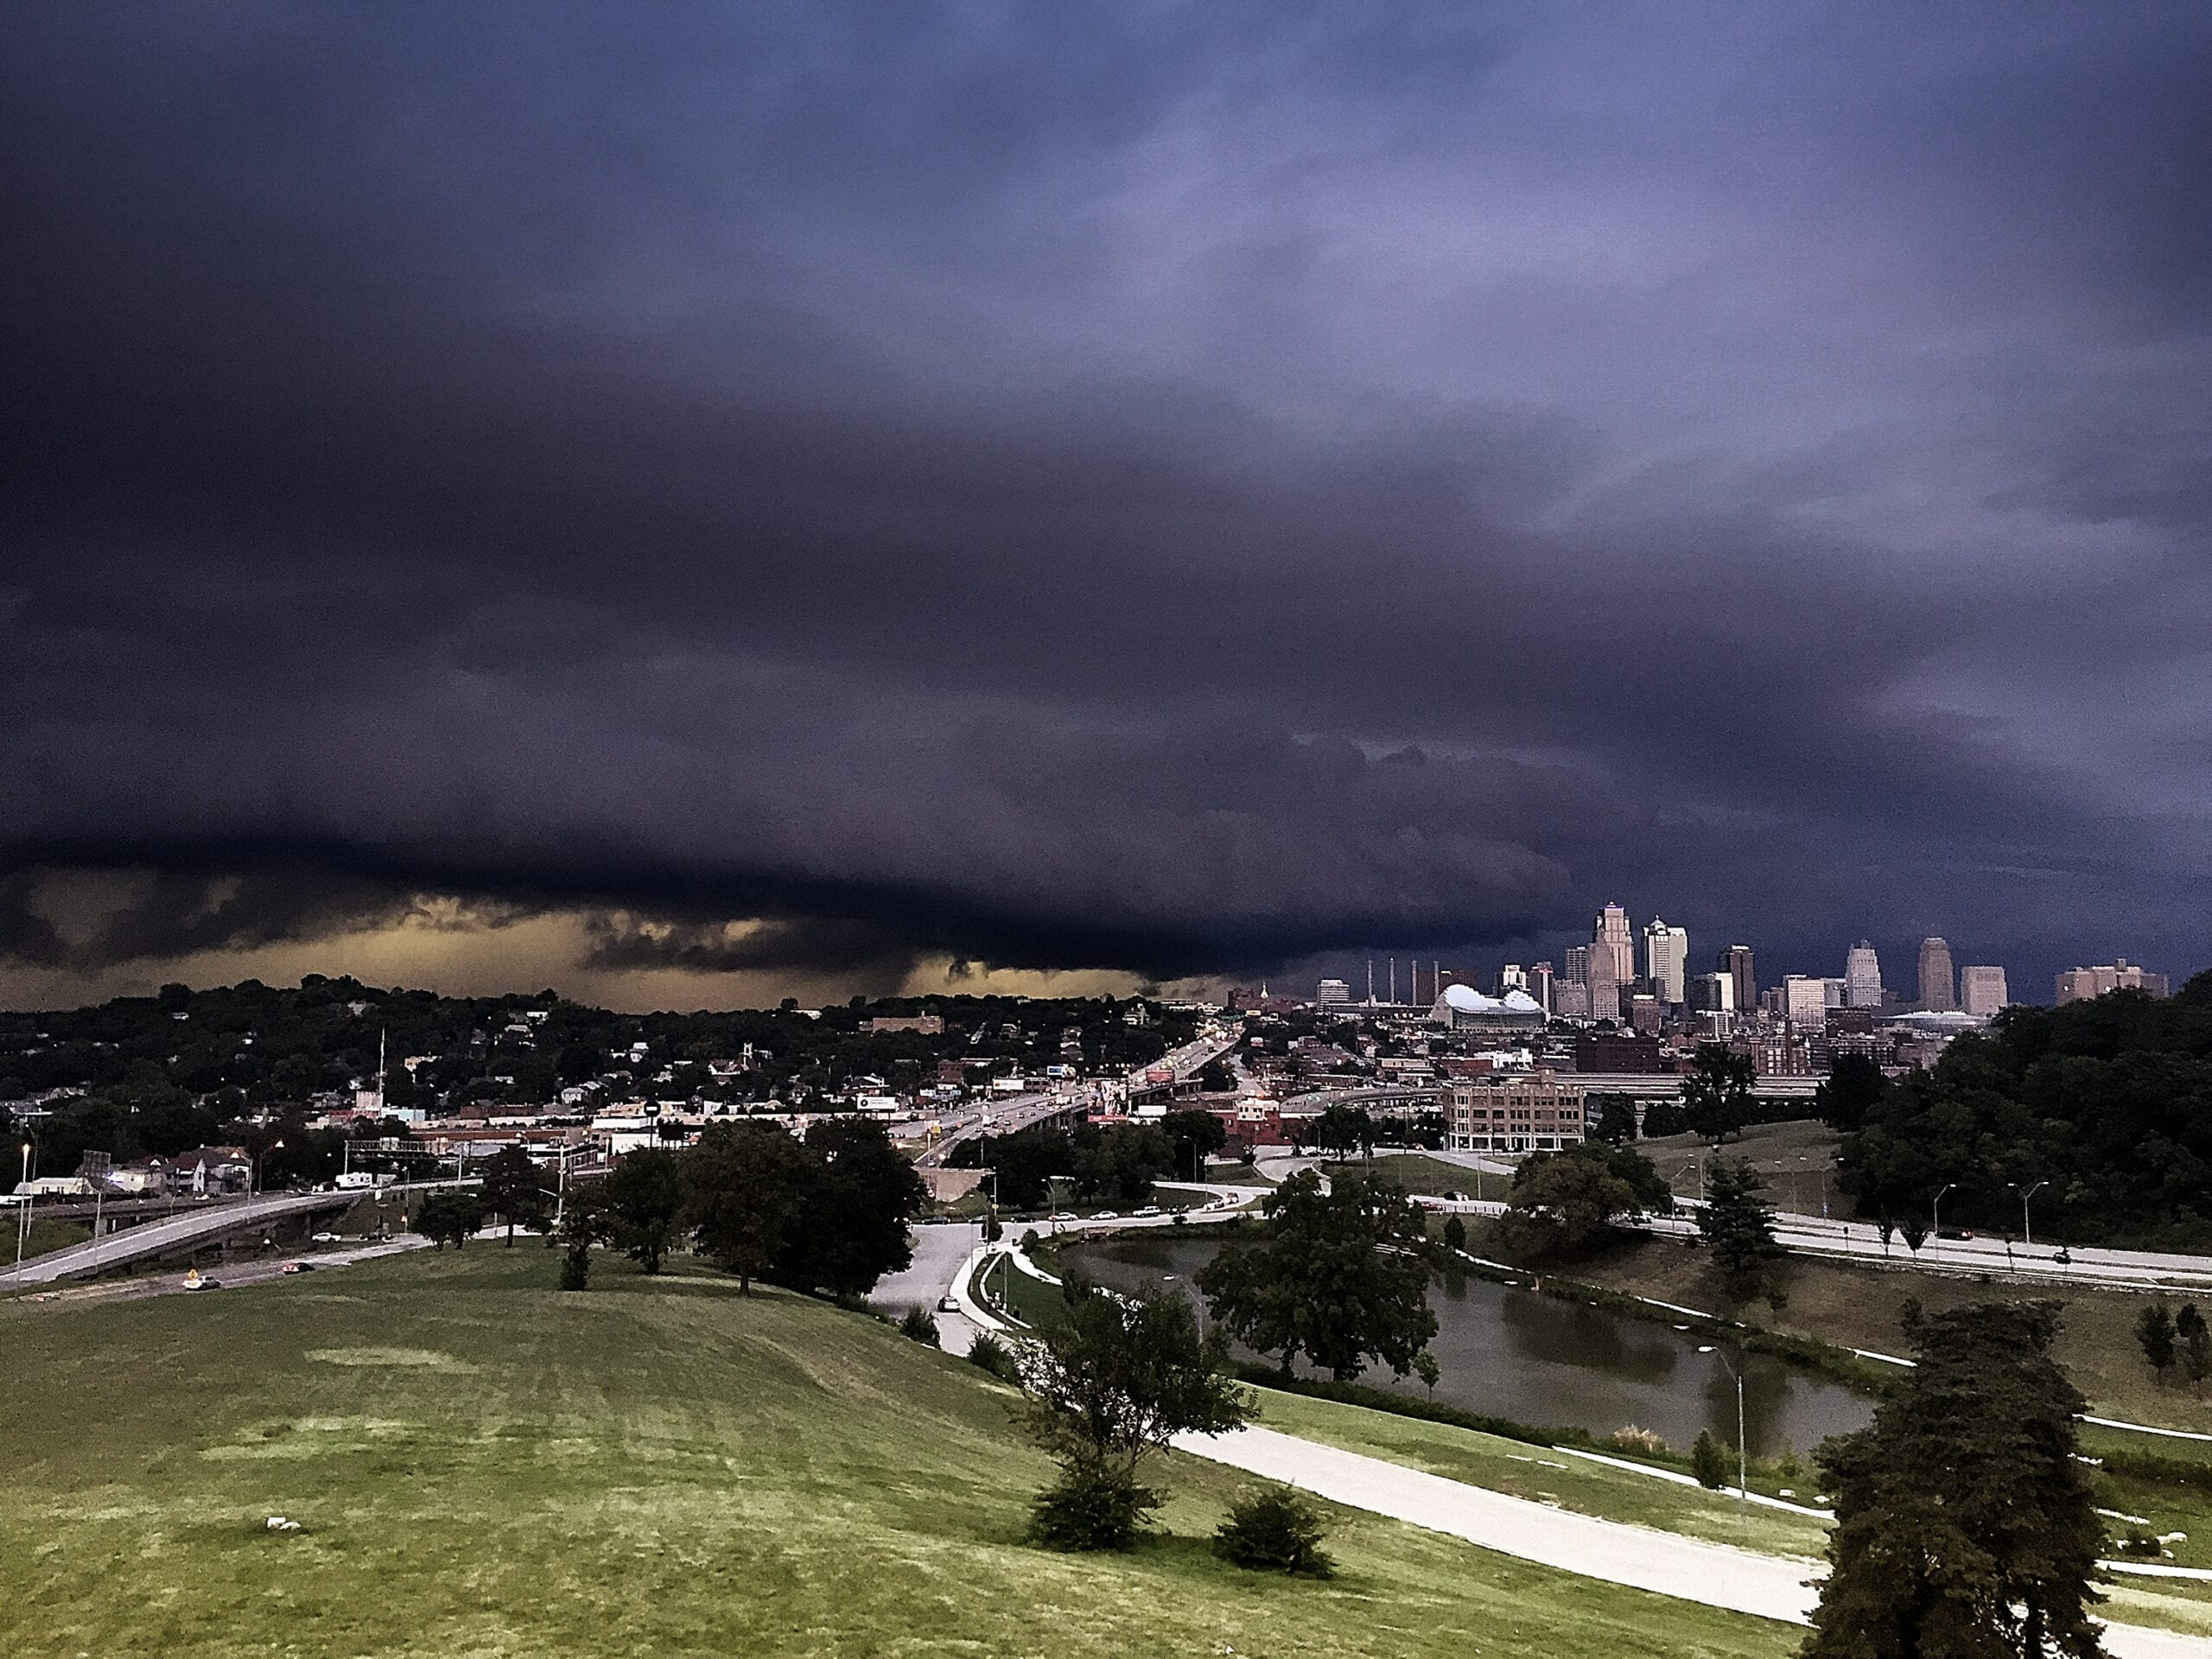 A storm rolls in over Kansas City. RDM's Insurance Law team handles insurance coverage issues, subrogation, bad faith claims, and more.